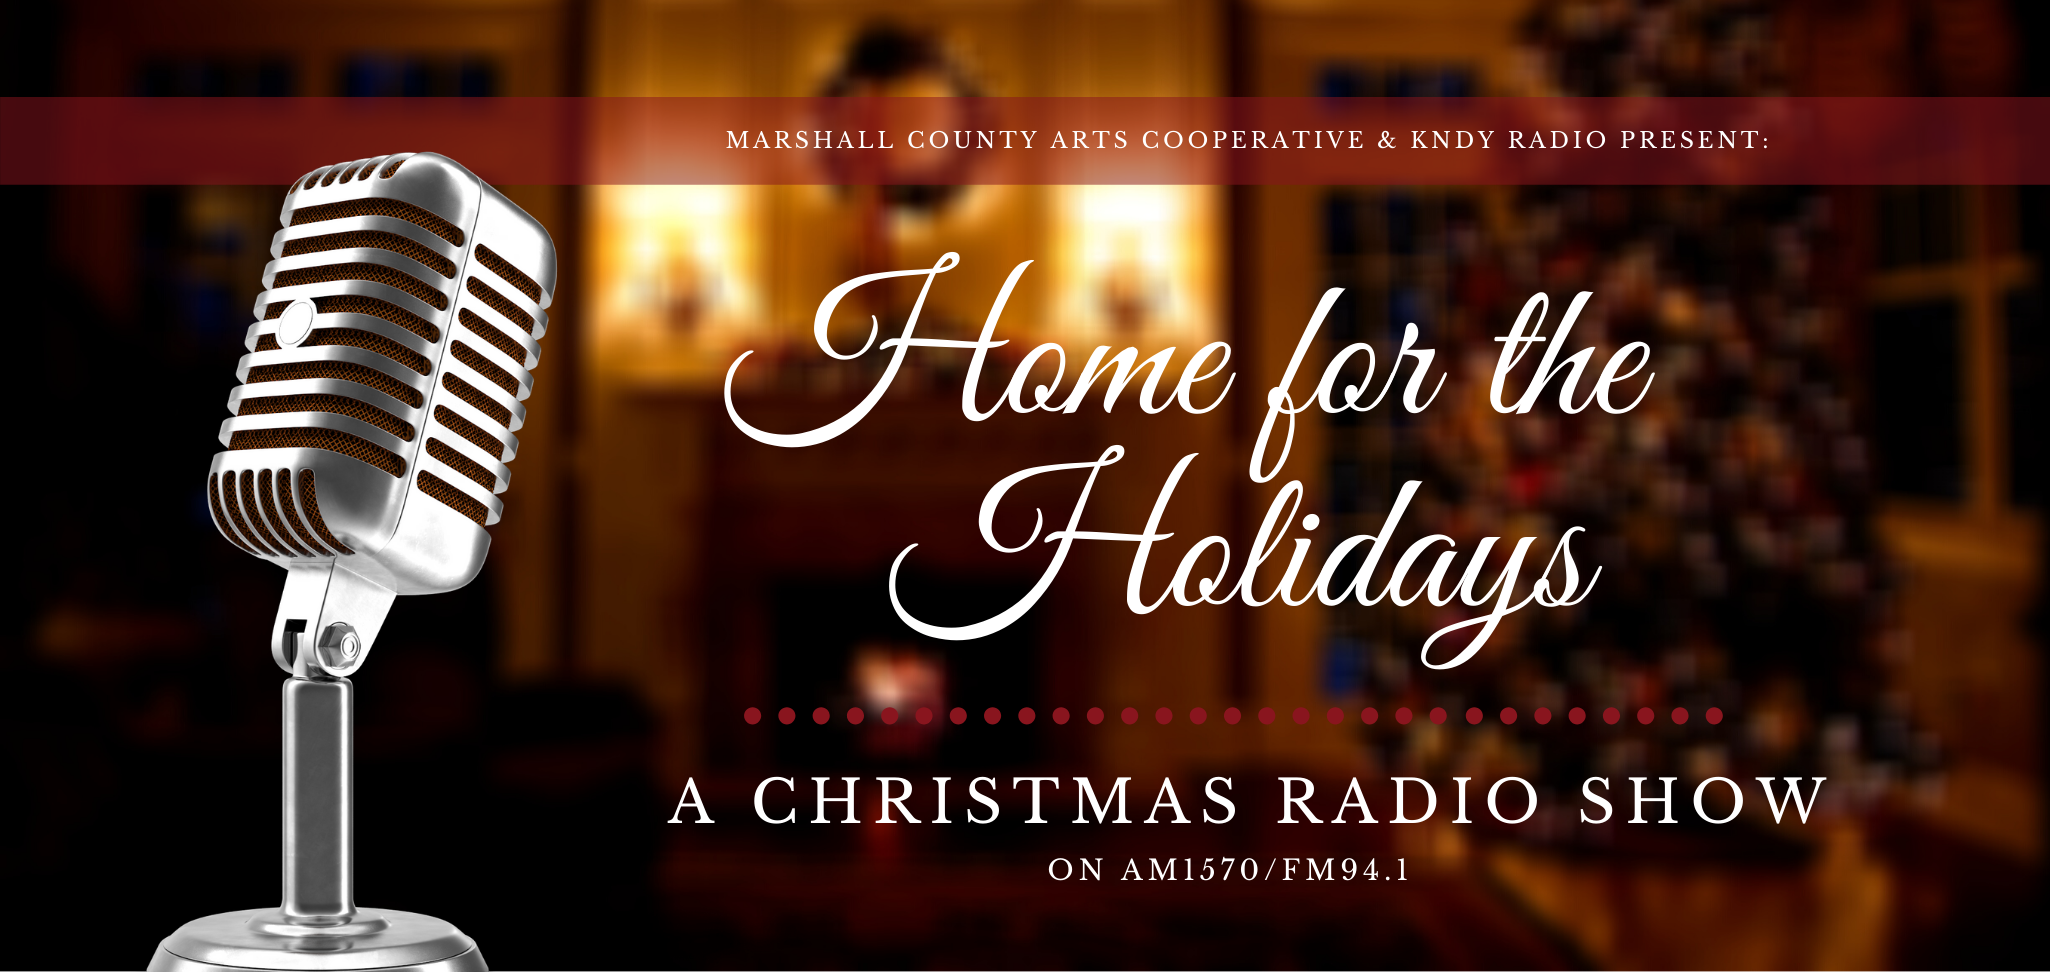 106.7 Fm Christmas Music 2021 List Christmas Radio Show Planned By Mcac And Kndy Radio Sunflower State Radio